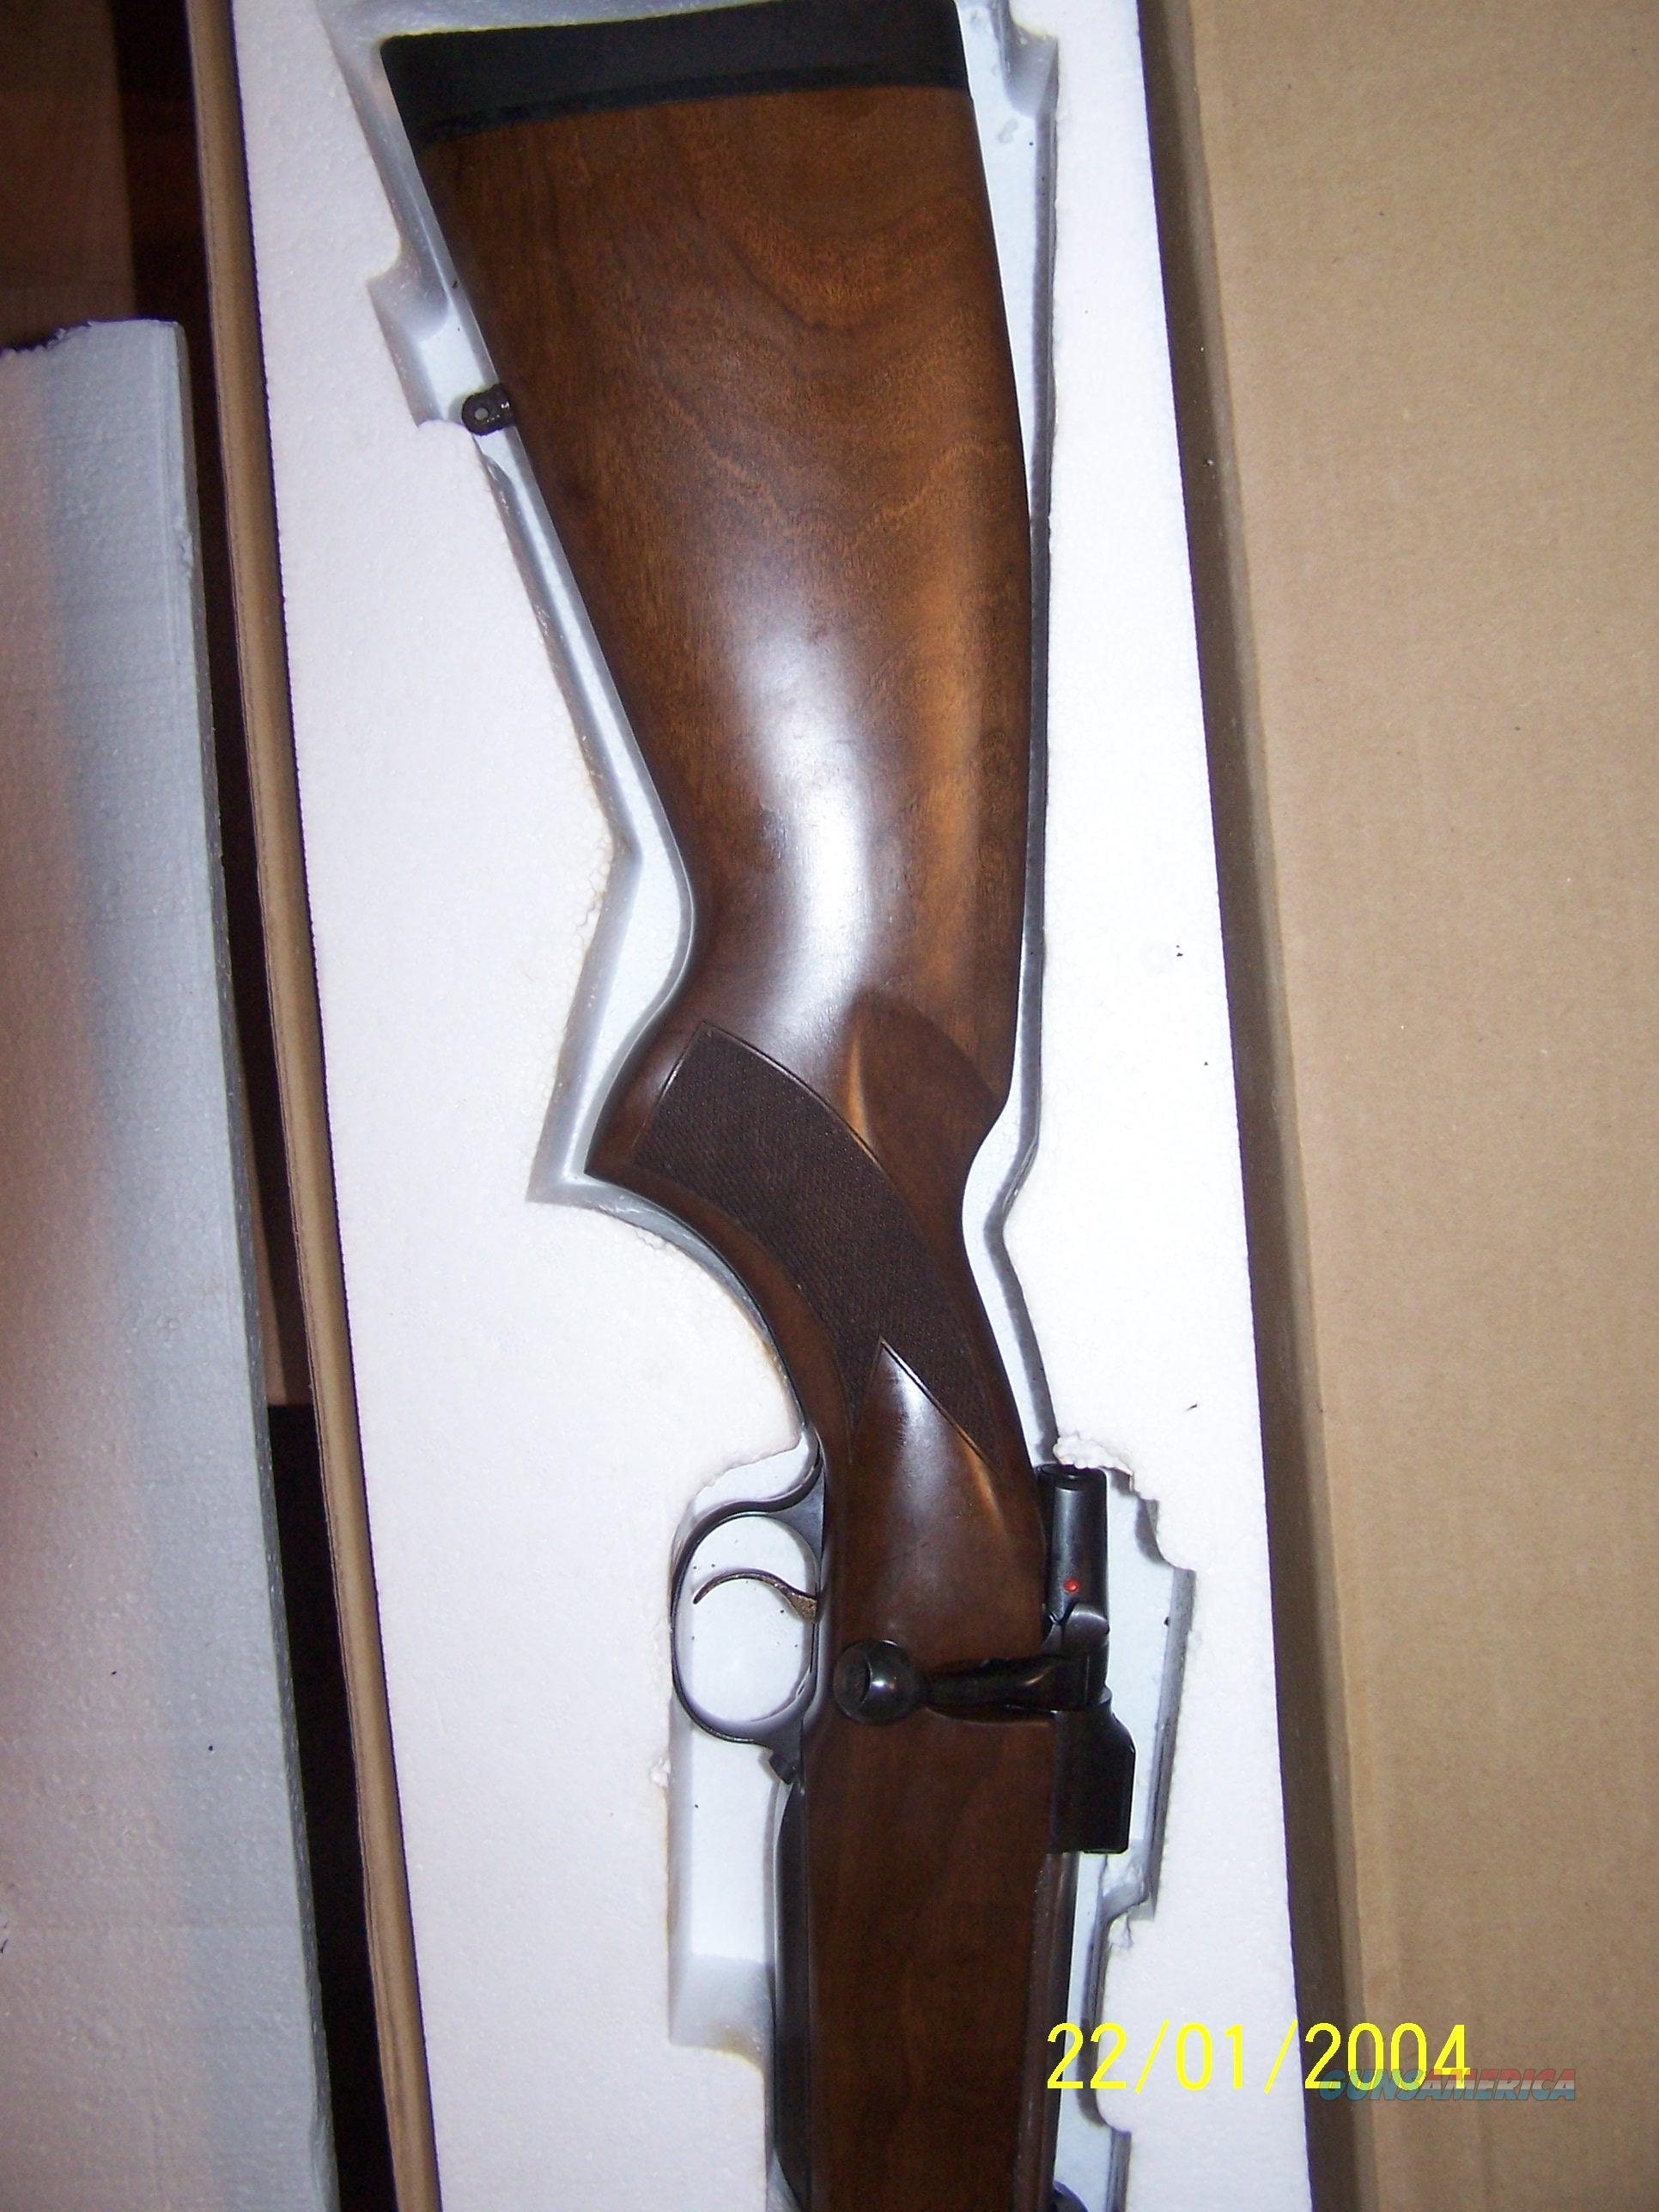 .458 Win. CZ 550 European Magnum.  Mauser type action.   Guns > Rifles > CZ Rifles